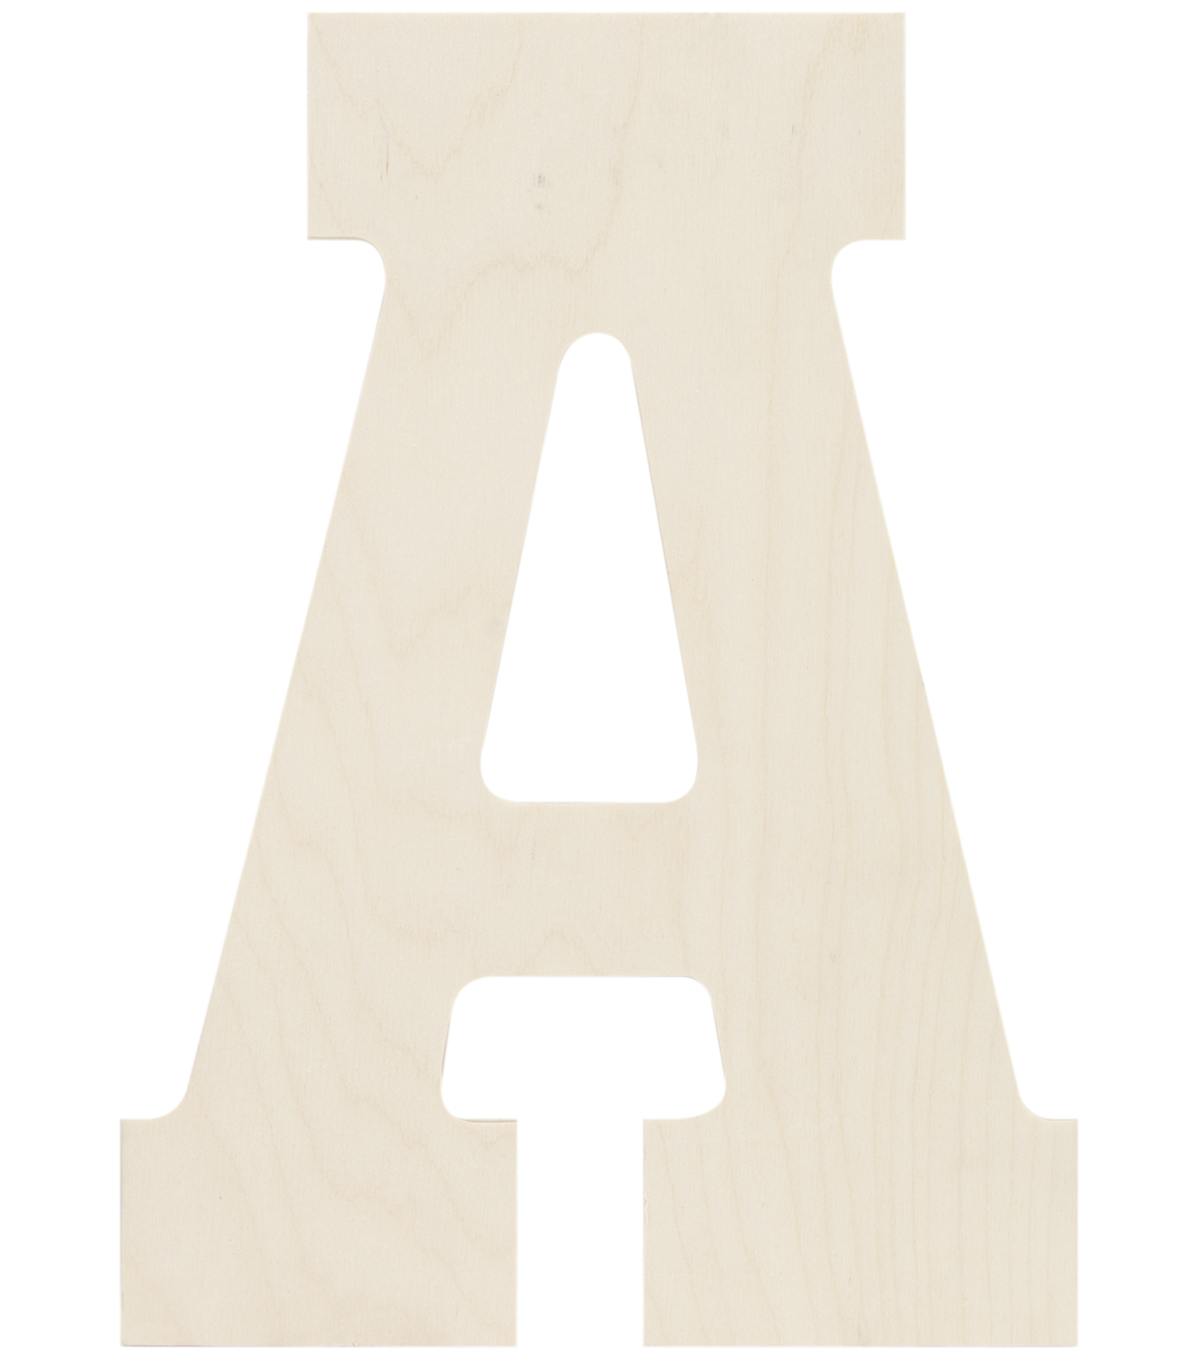 Baltic Birch Collegiate Font Letters & Numbers 13.5\u0022